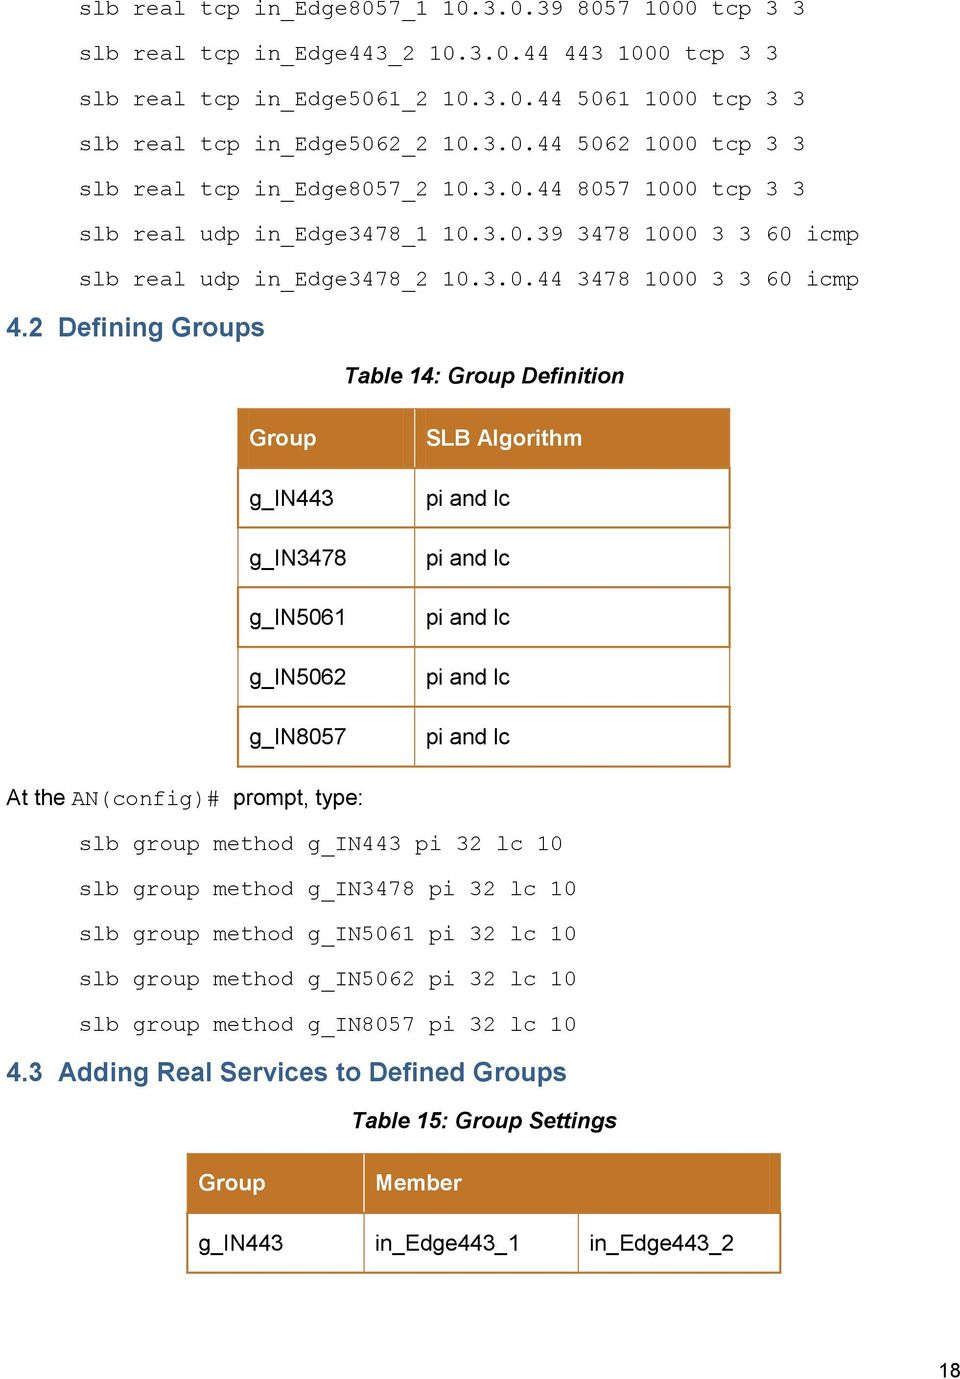 2 Defining Groups Table 14: Group Definition Group g_in443 g_in3478 g_in5061 g_in5062 g_in8057 SLB Algorithm slb group method g_in443 pi 32 lc 10 slb group method g_in3478 pi 32 lc 10 slb group